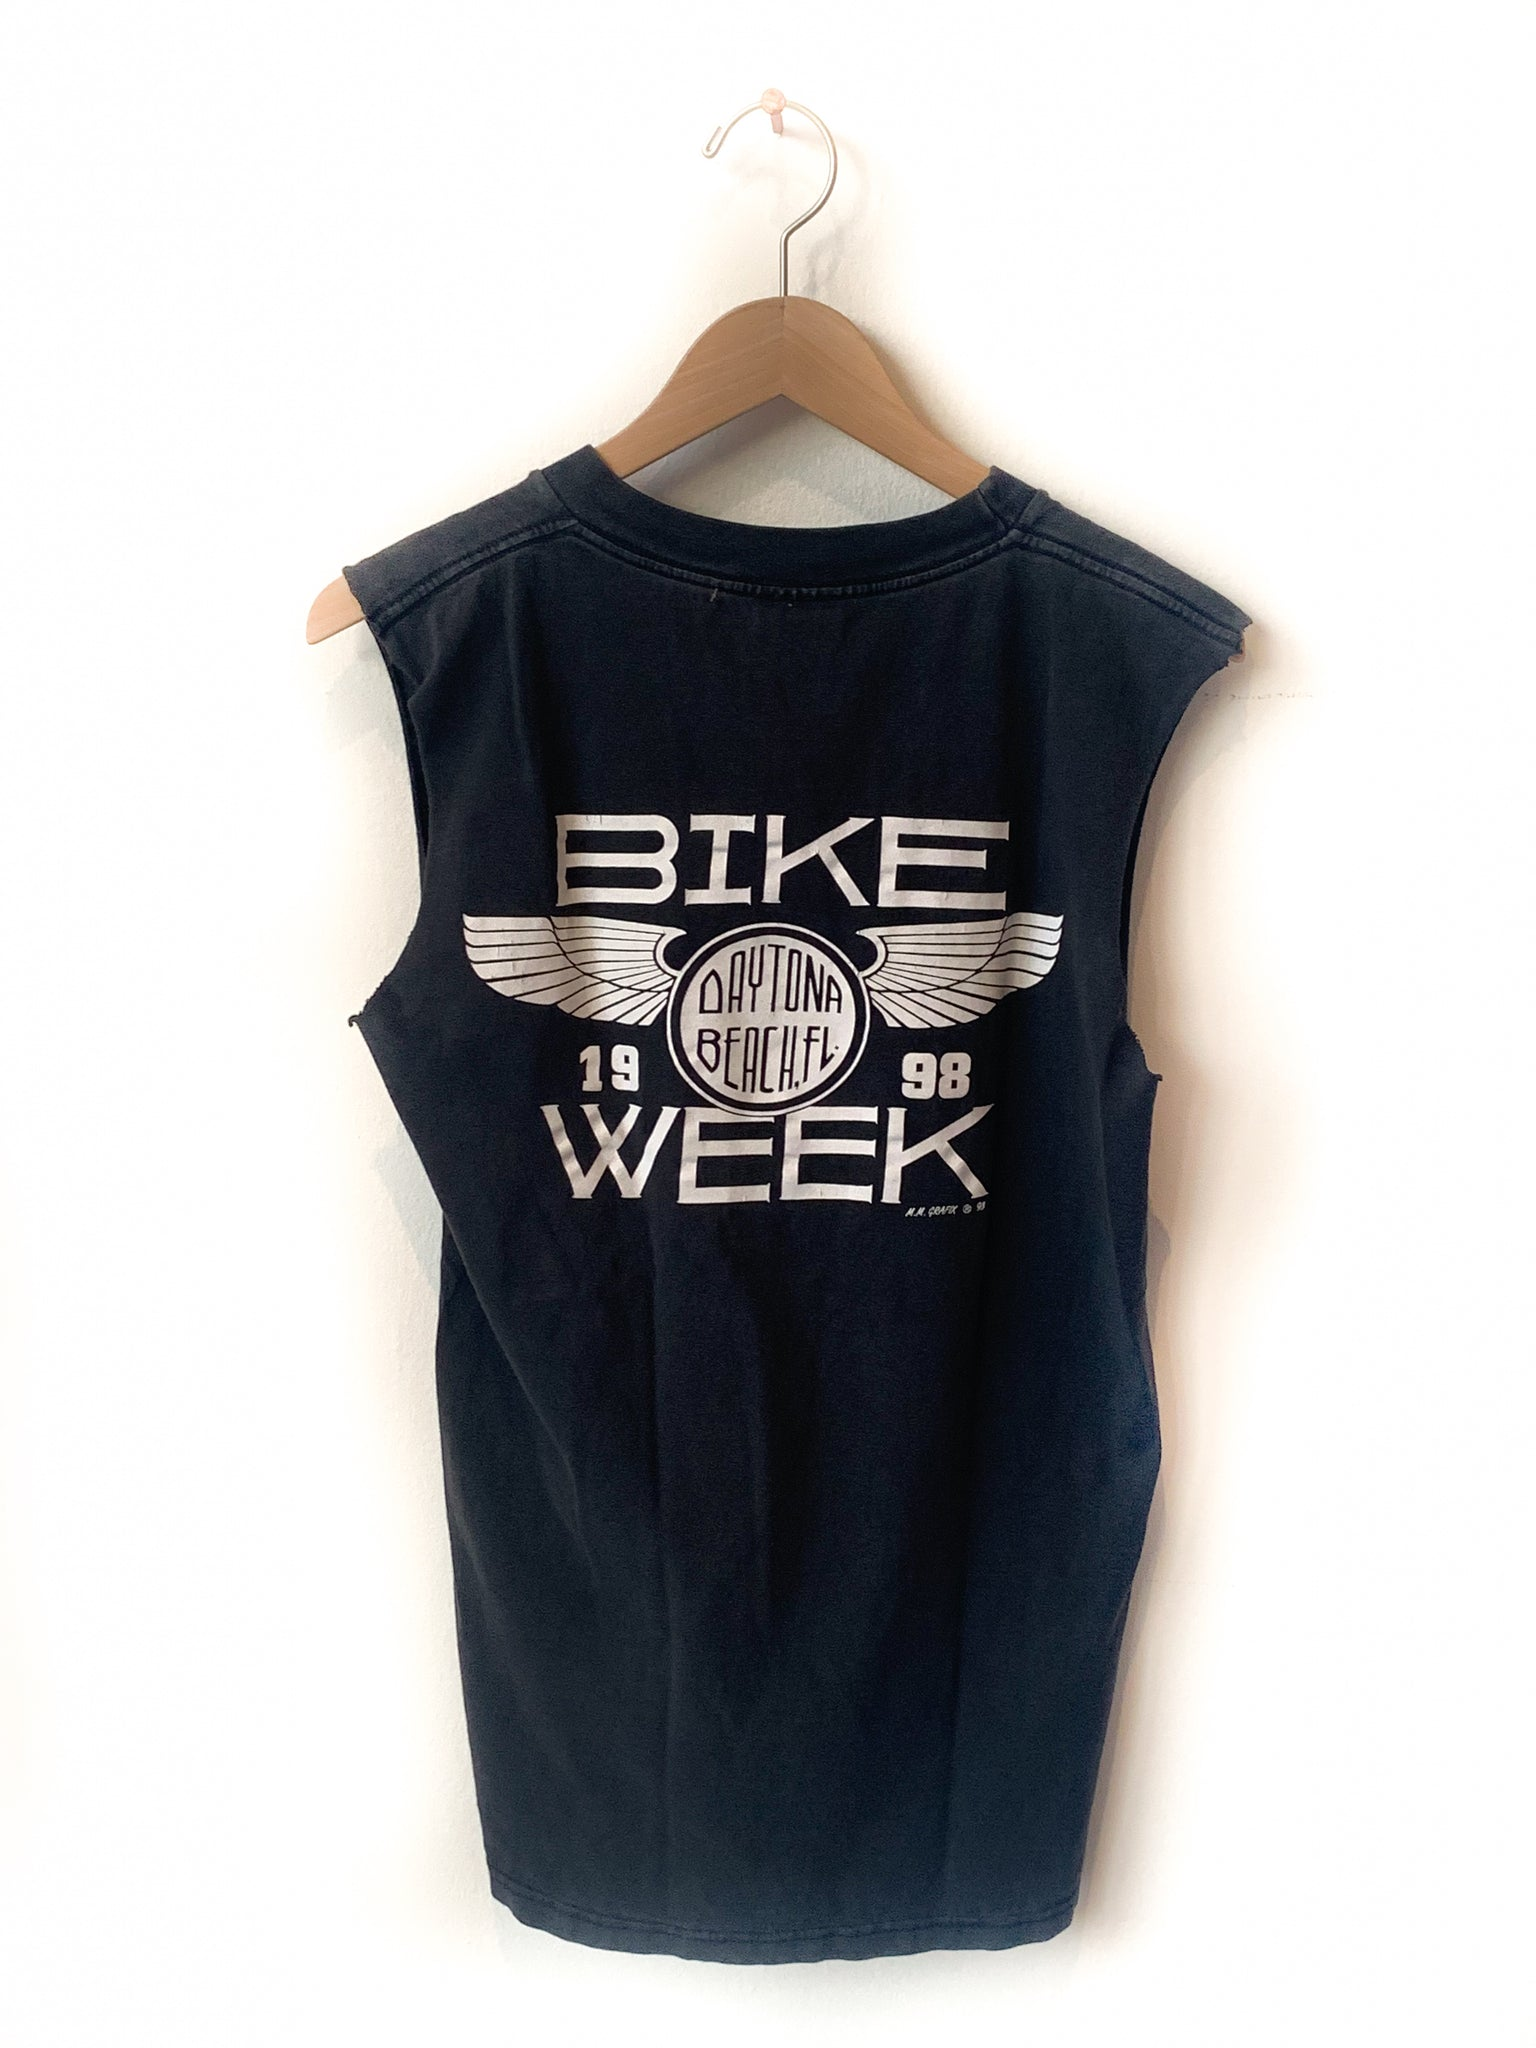 DAYTONA 1998 BIKE WEEK TANK